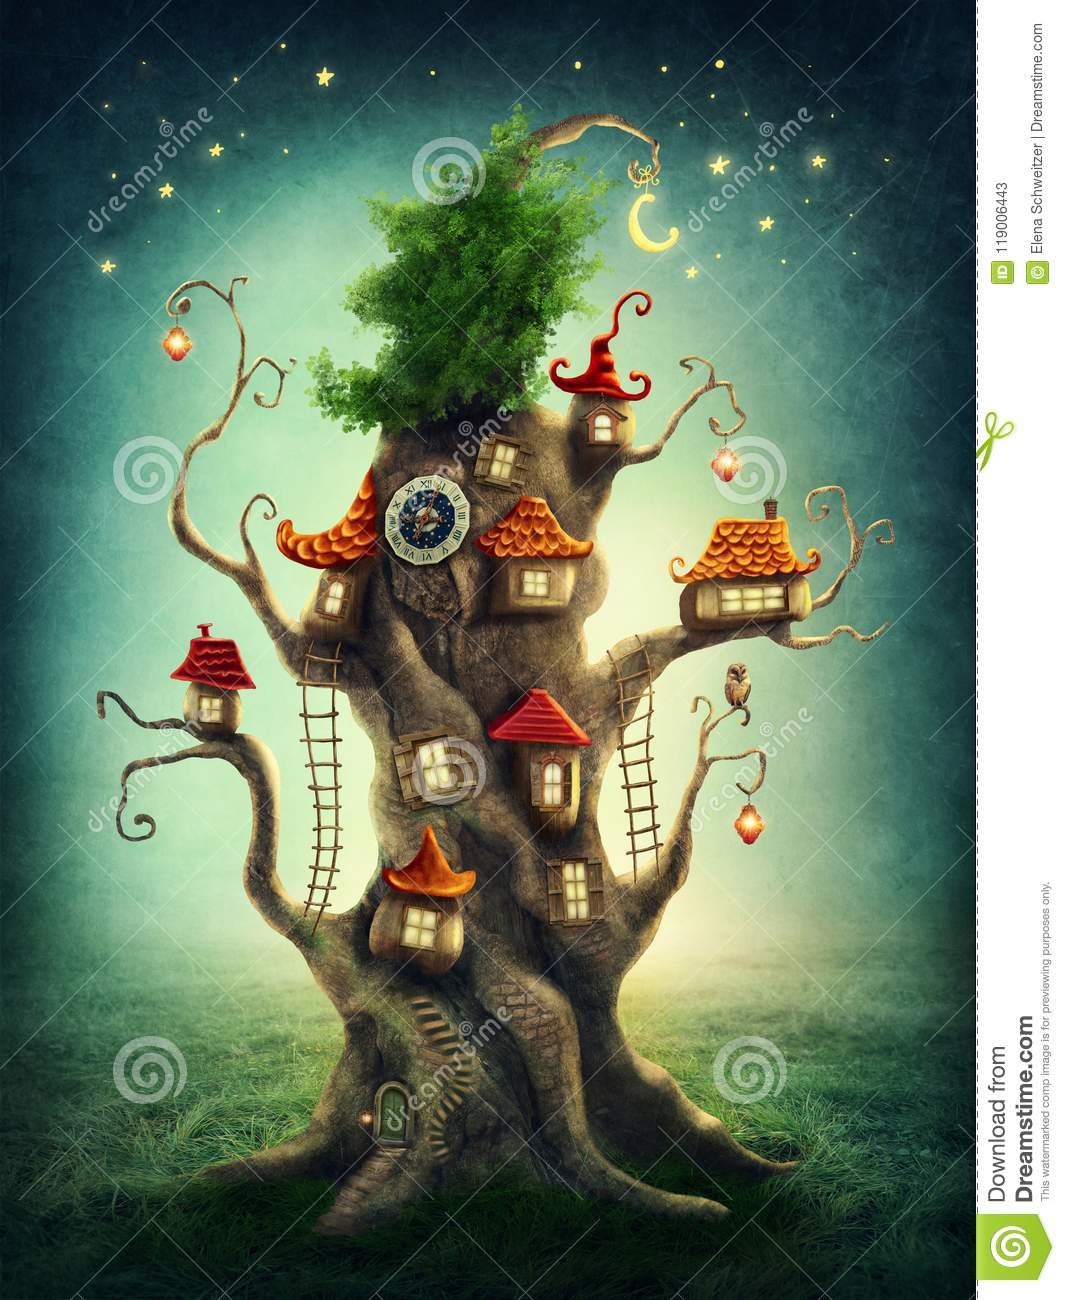 Download Magic tree house stock illustration. Illustration of meadow - 119006443